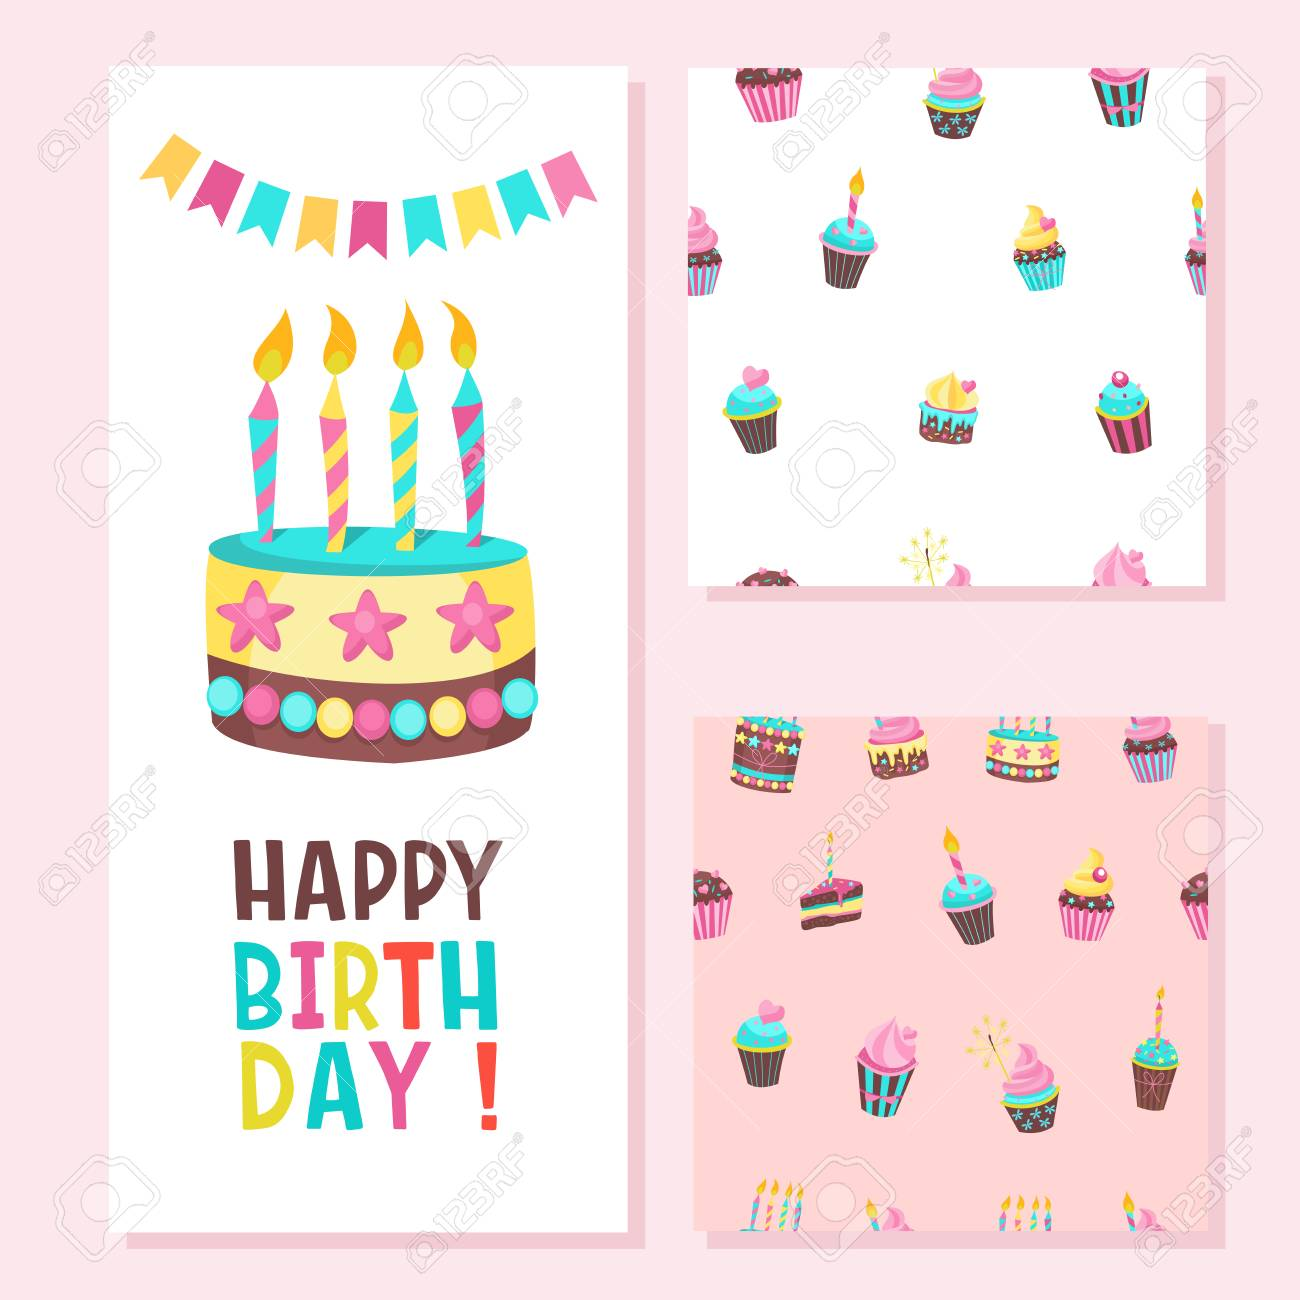 Happy Birthday Greeting Card Two Seamless Patterns Lovely Cakes With Candles For